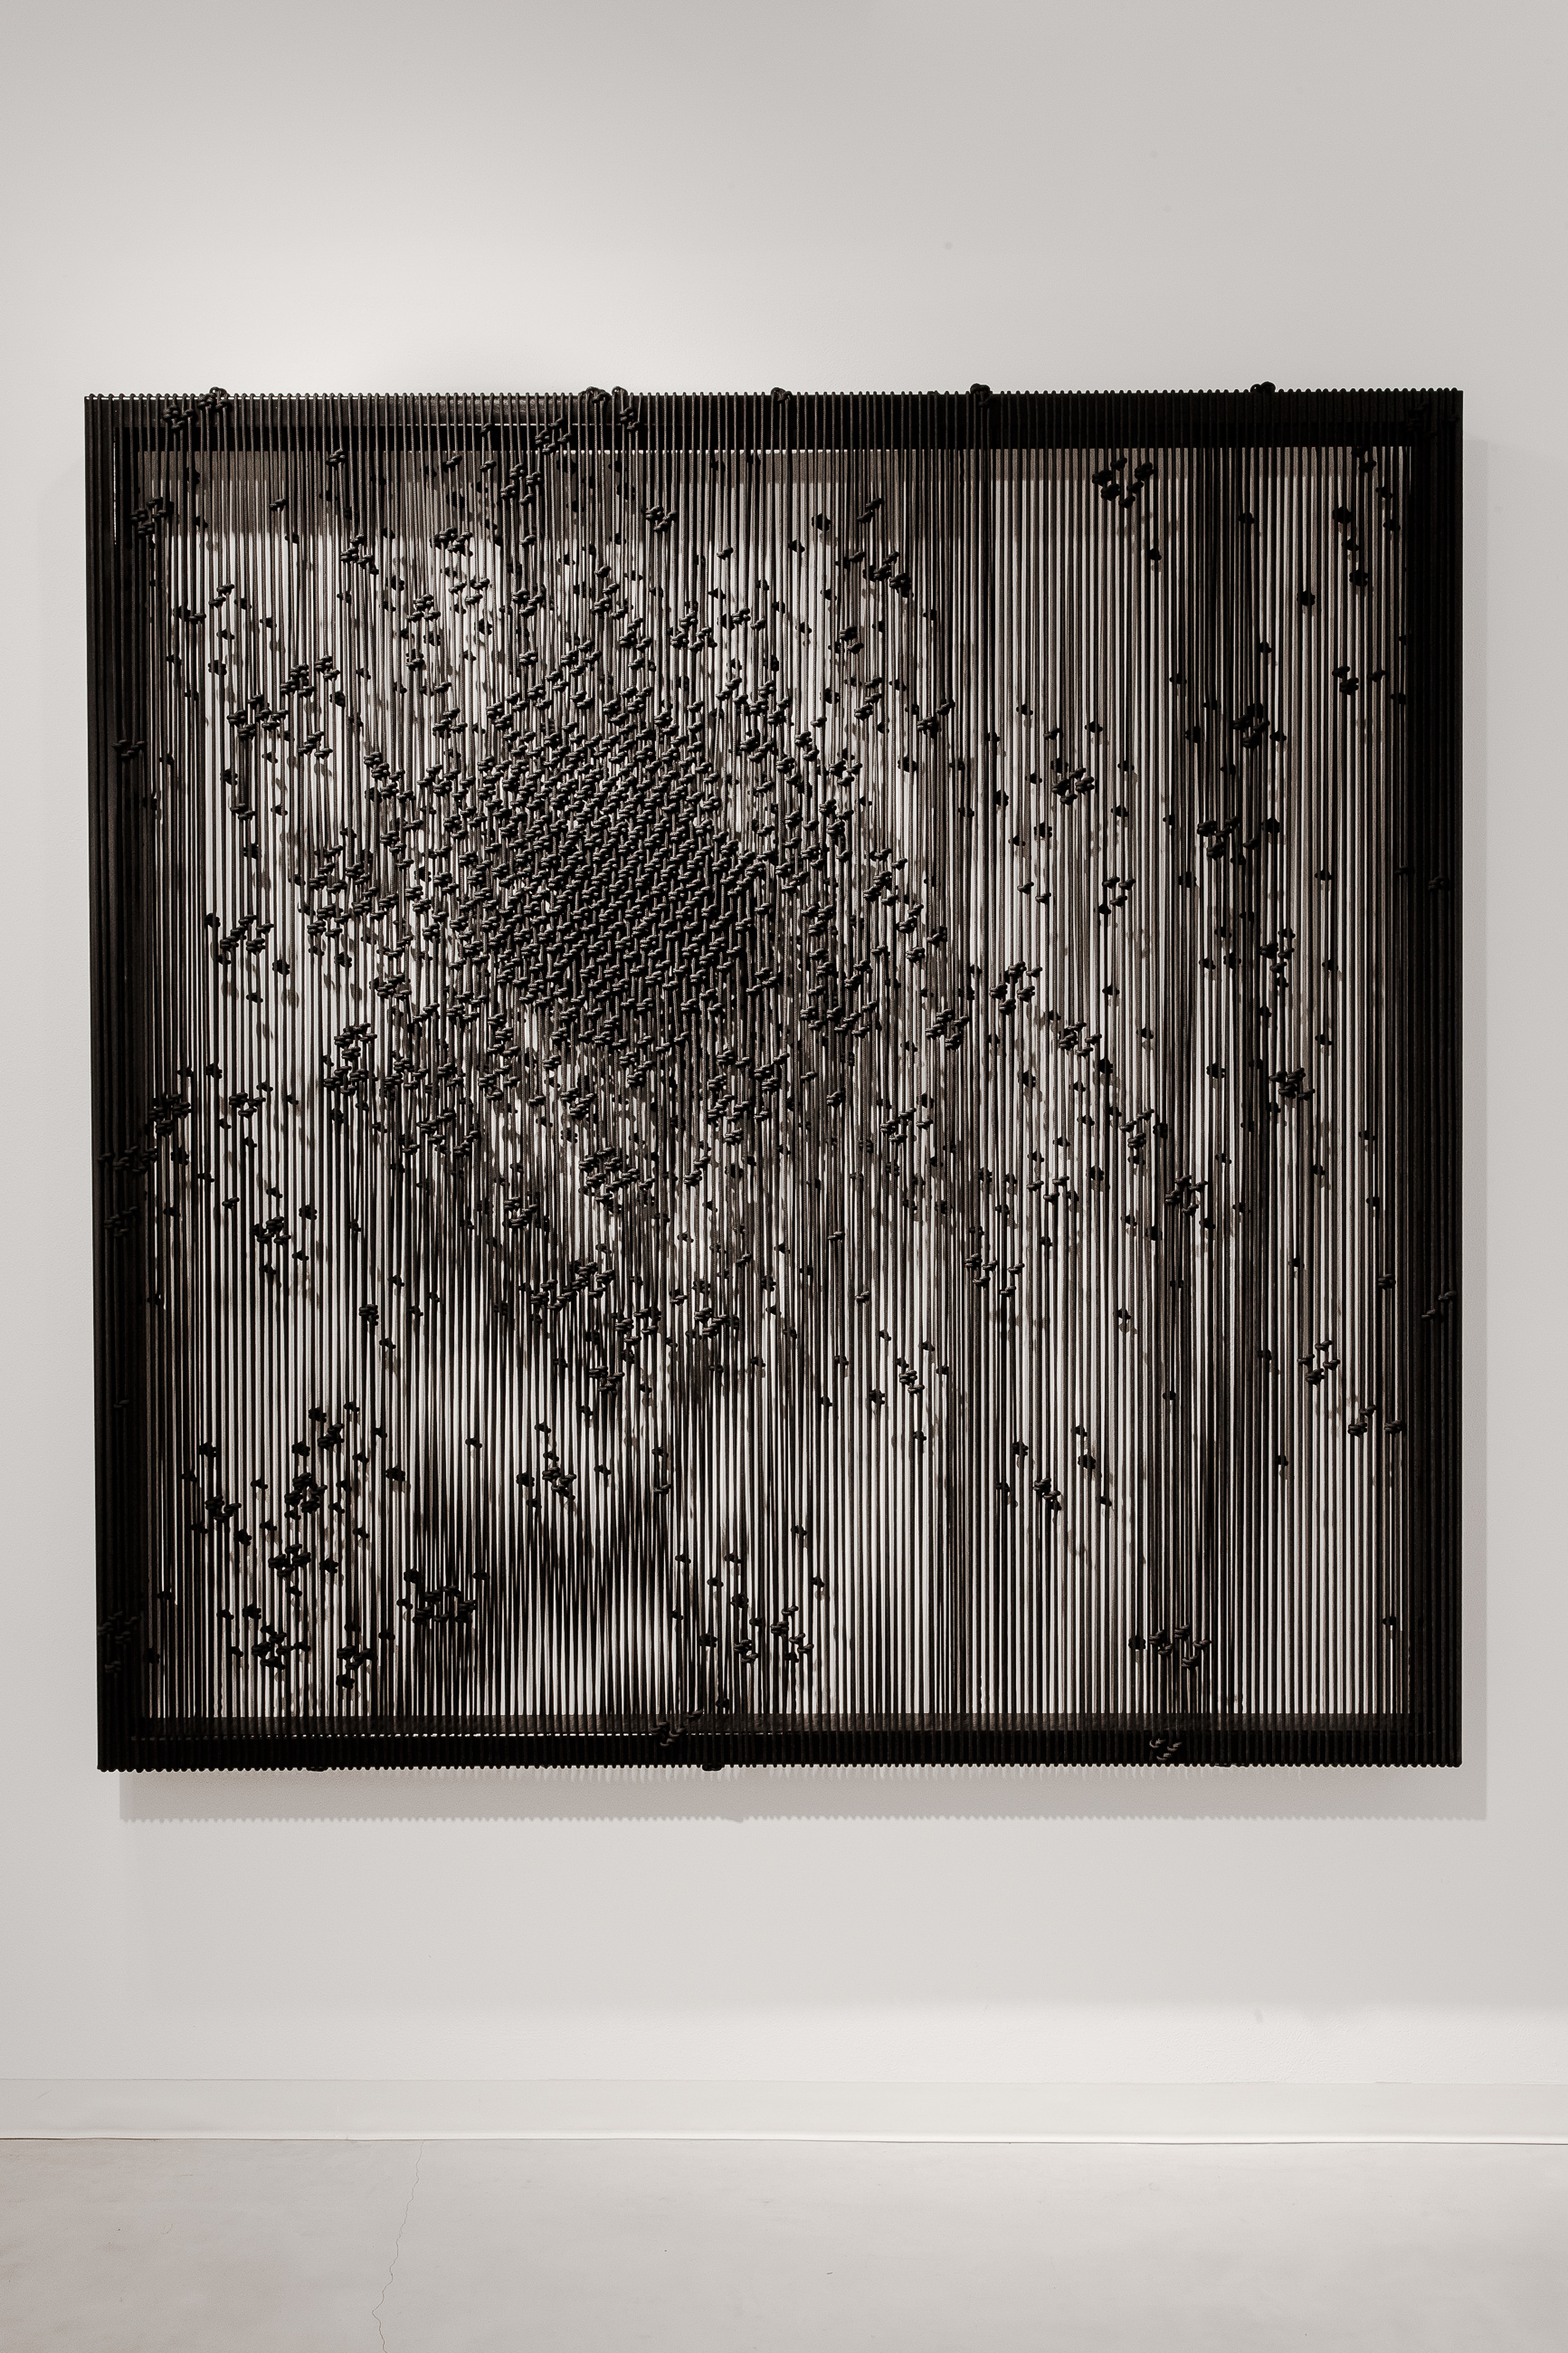 Arthur Duff, Fragment_M10, 2015, Black polyester rope and black iron framework, 160 x 160 x 12 cm